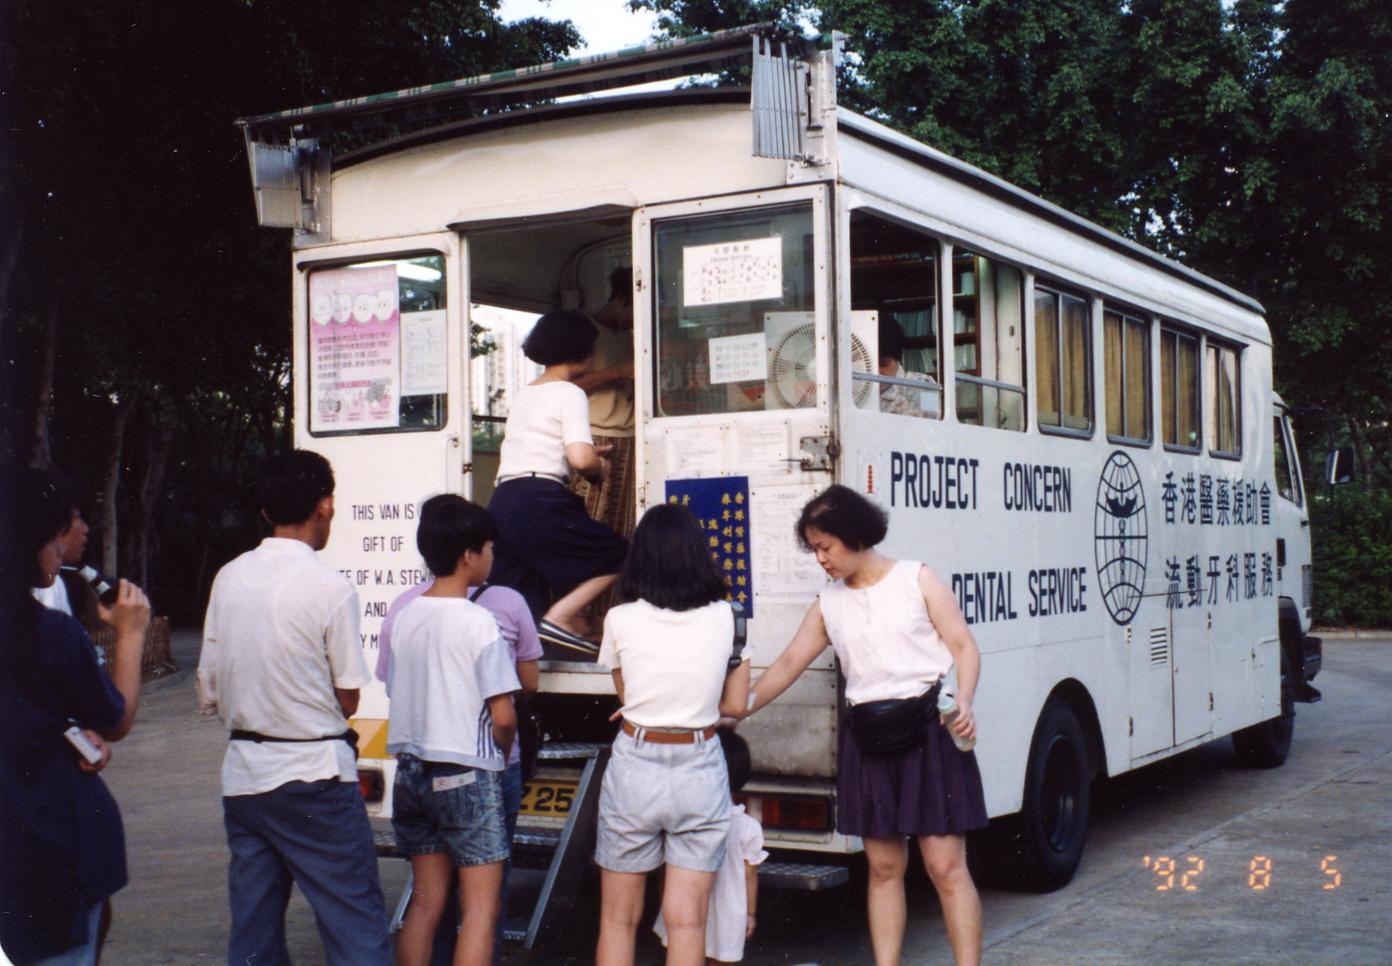 Mobile Dental Service in 1990's